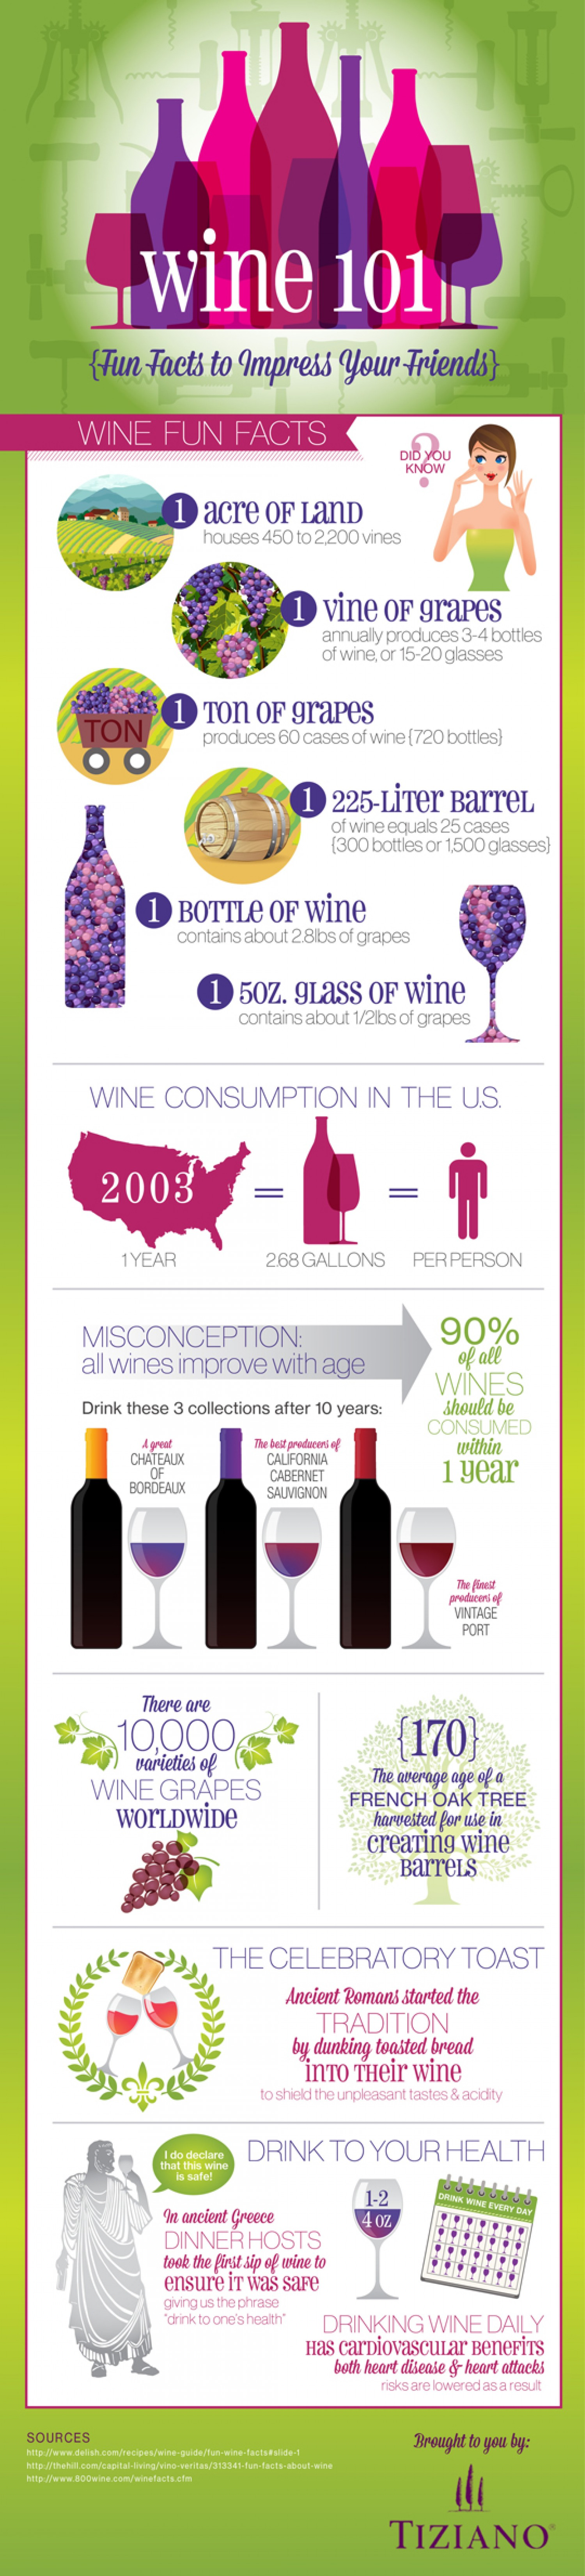 wine-101-fun-facts-to-impress-your-friends_5293c38832a42_w1500